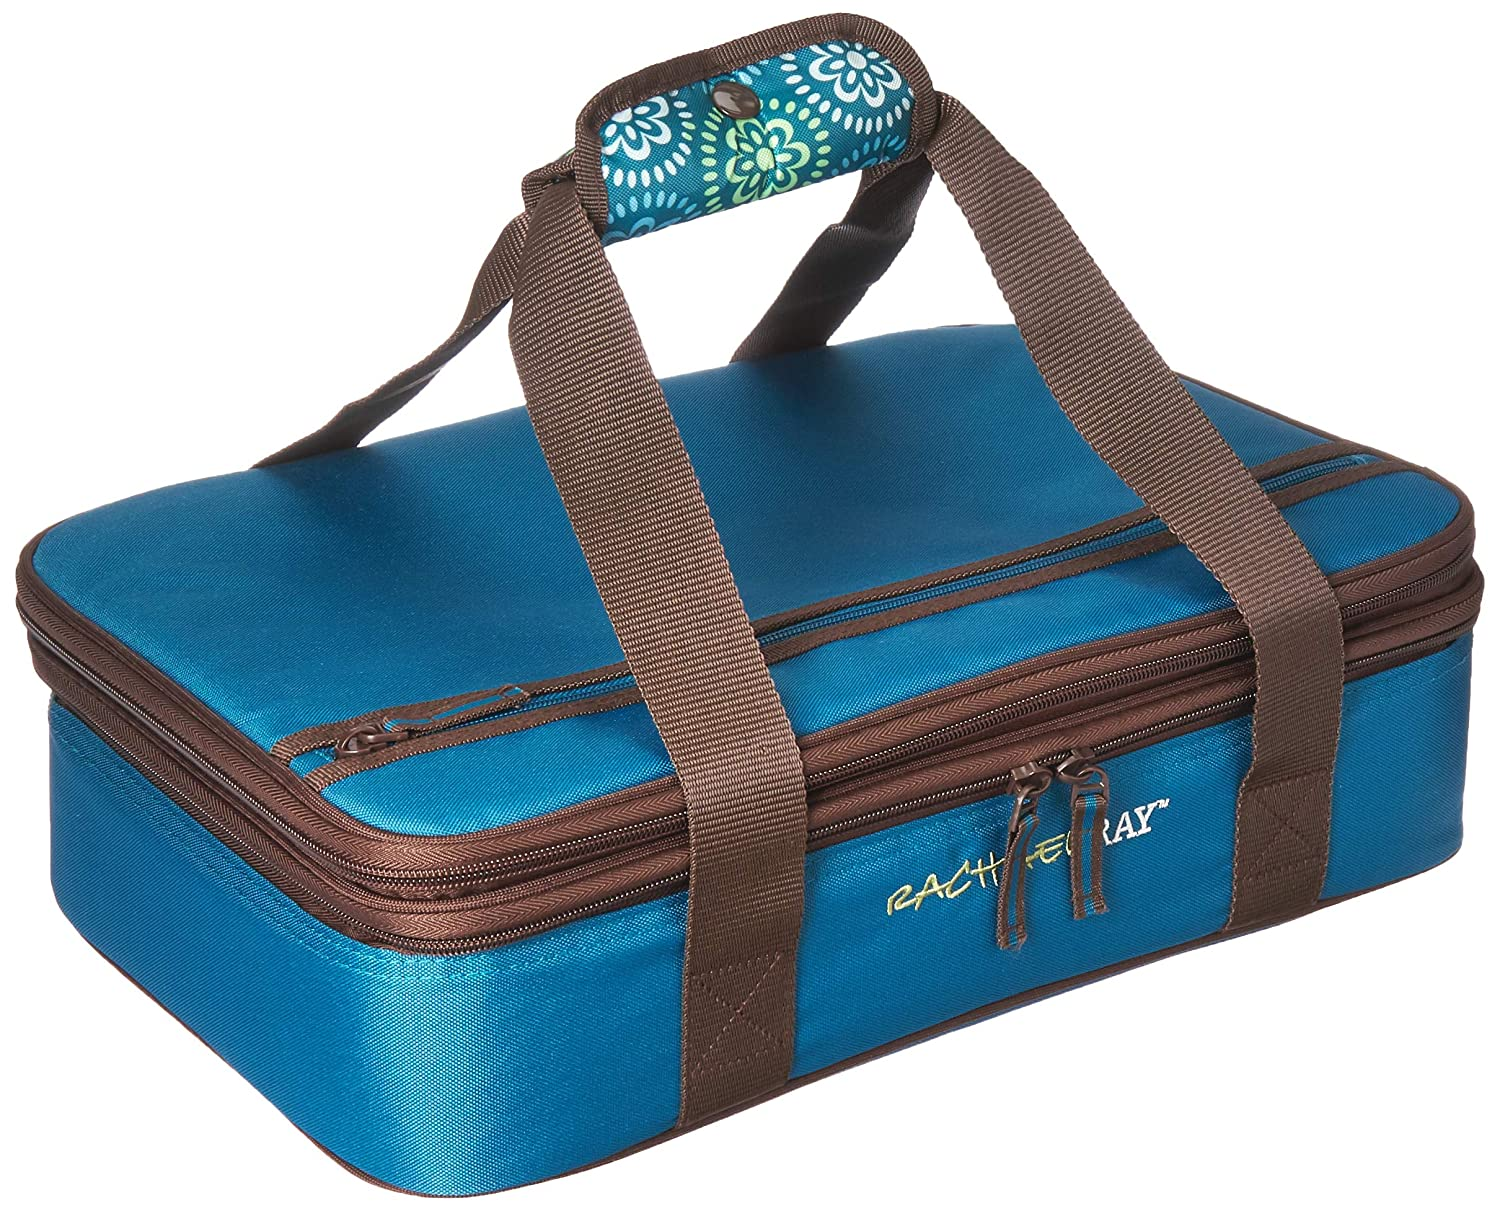 """Rachael Ray Expandable Lasagna Lugger, Double Casserole Carrier for Potluck Parties, Picnics, Tailgates - Fits two 9""""x13"""" Casserole Dishes, Marine Blue Floral Medallion"""